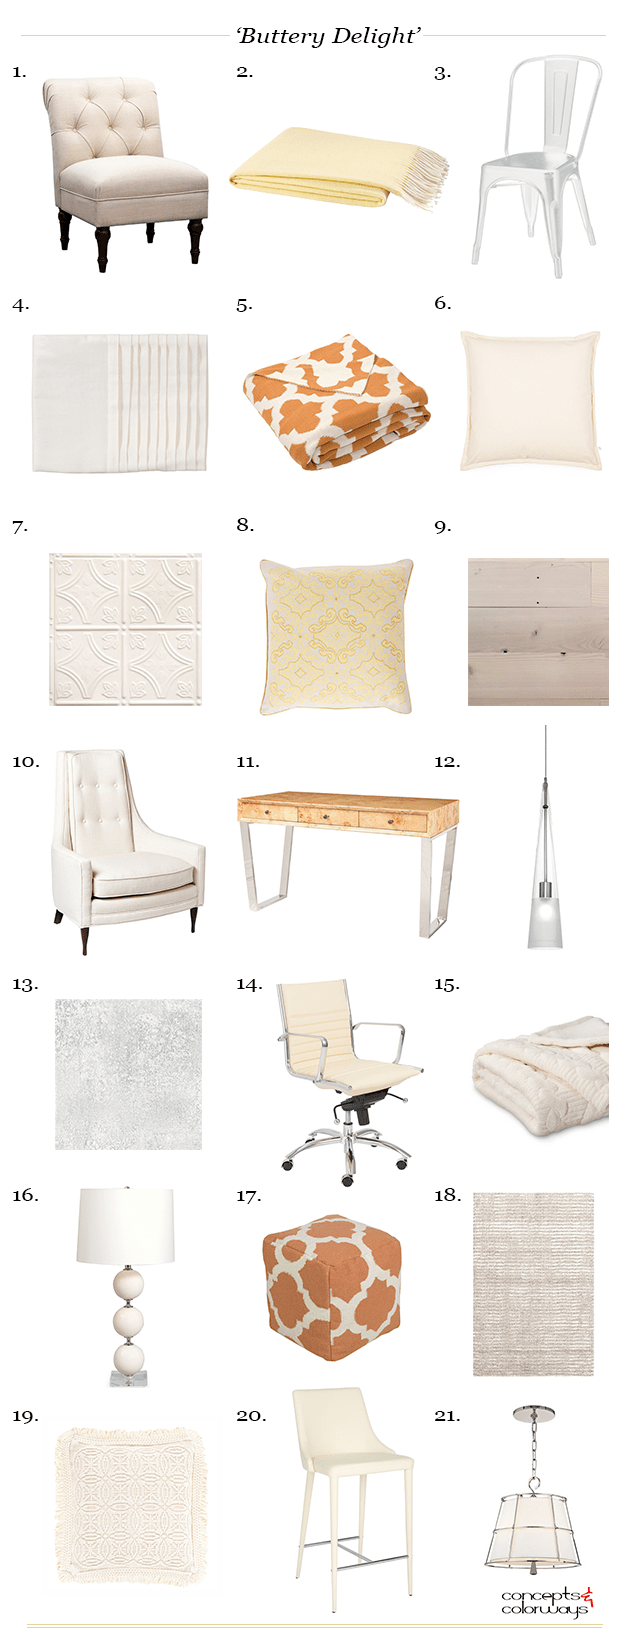 buttery delight interior design mood board get the look